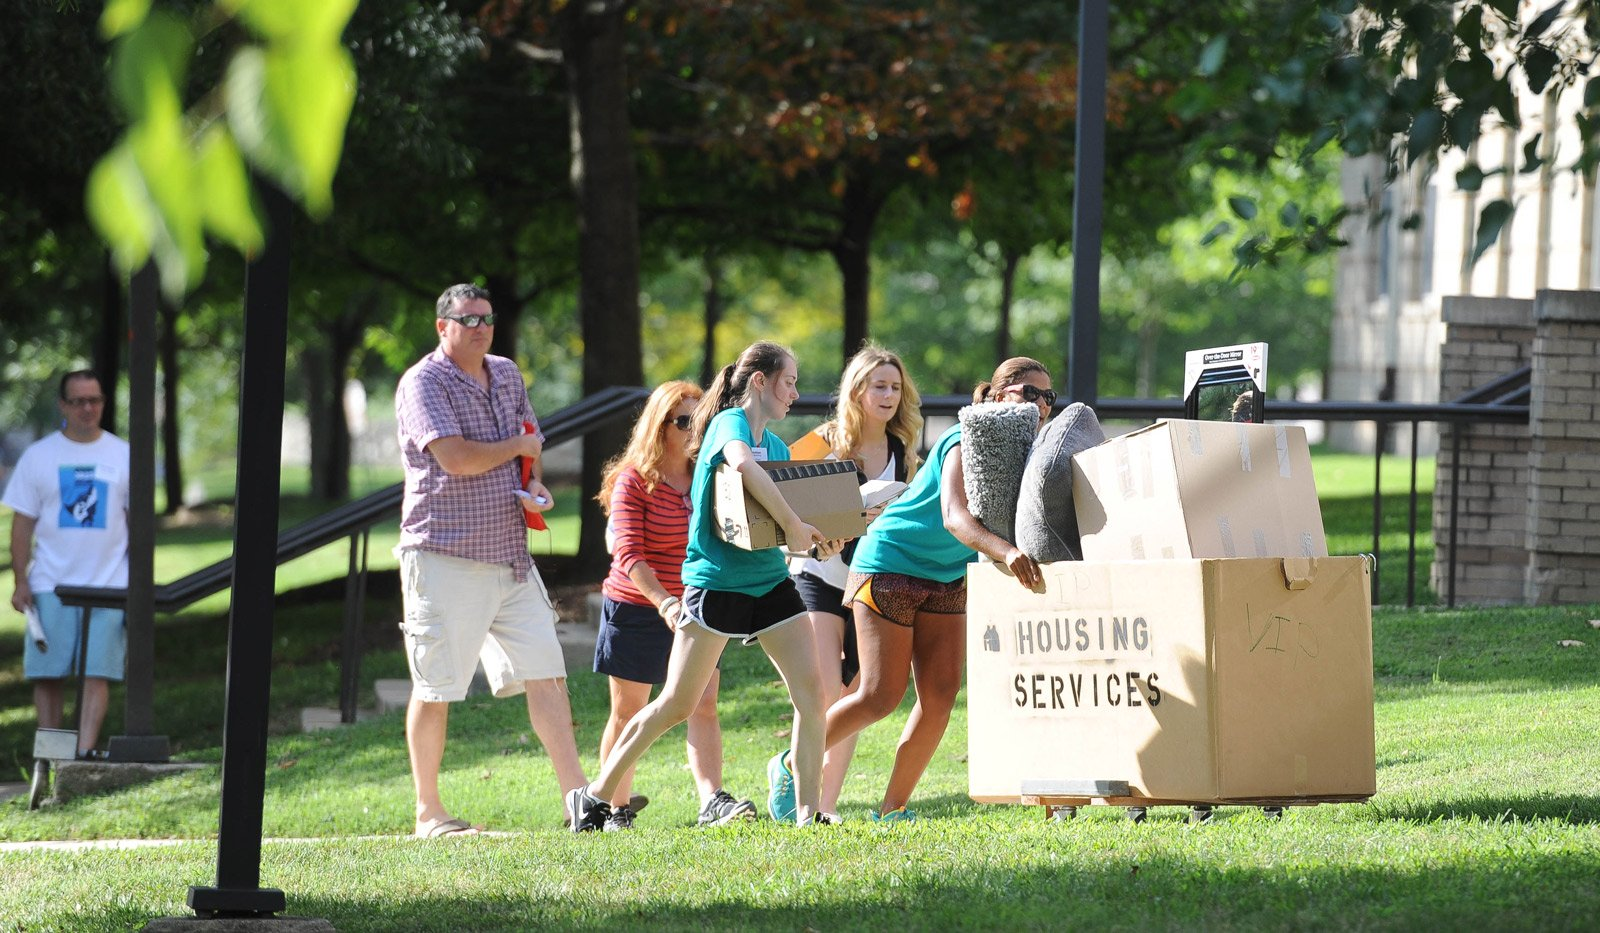 Move-in day at Catholic University